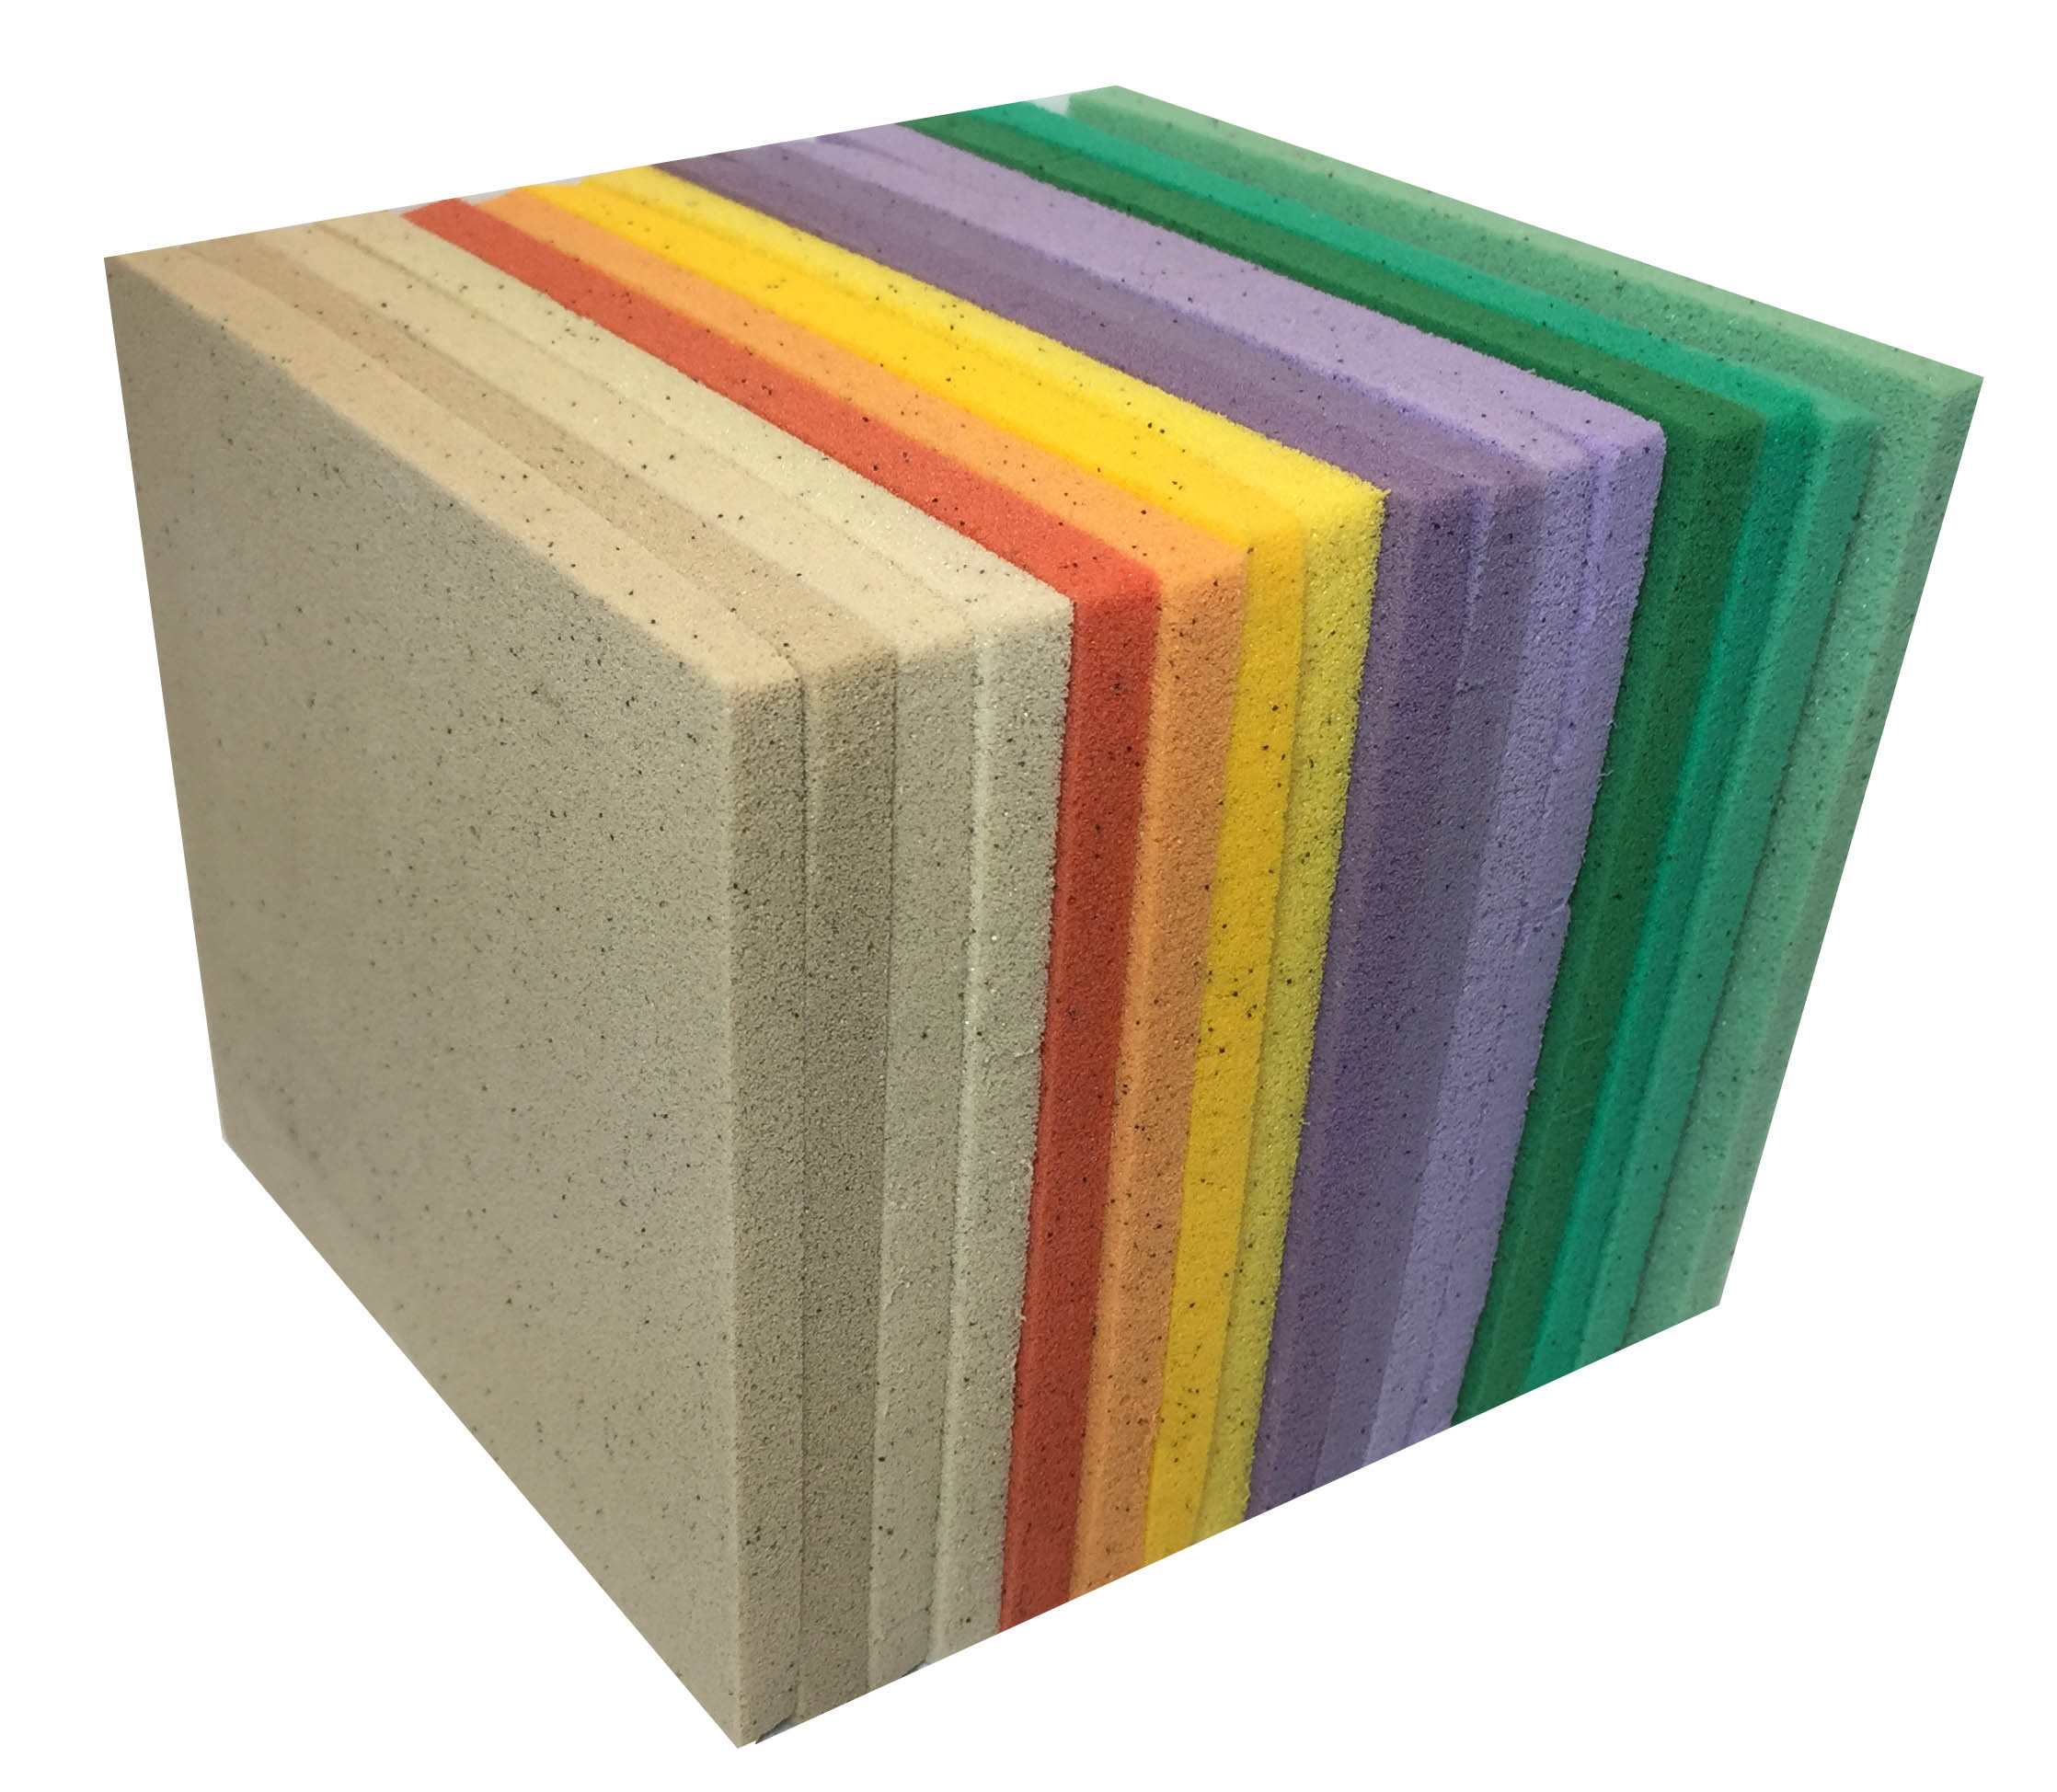 High Density Upholstery Foam for Best Cushions Material Ideas: High Density Upholstery Foam | Upholstery Padding For Chairs | High Density Foam Cushion